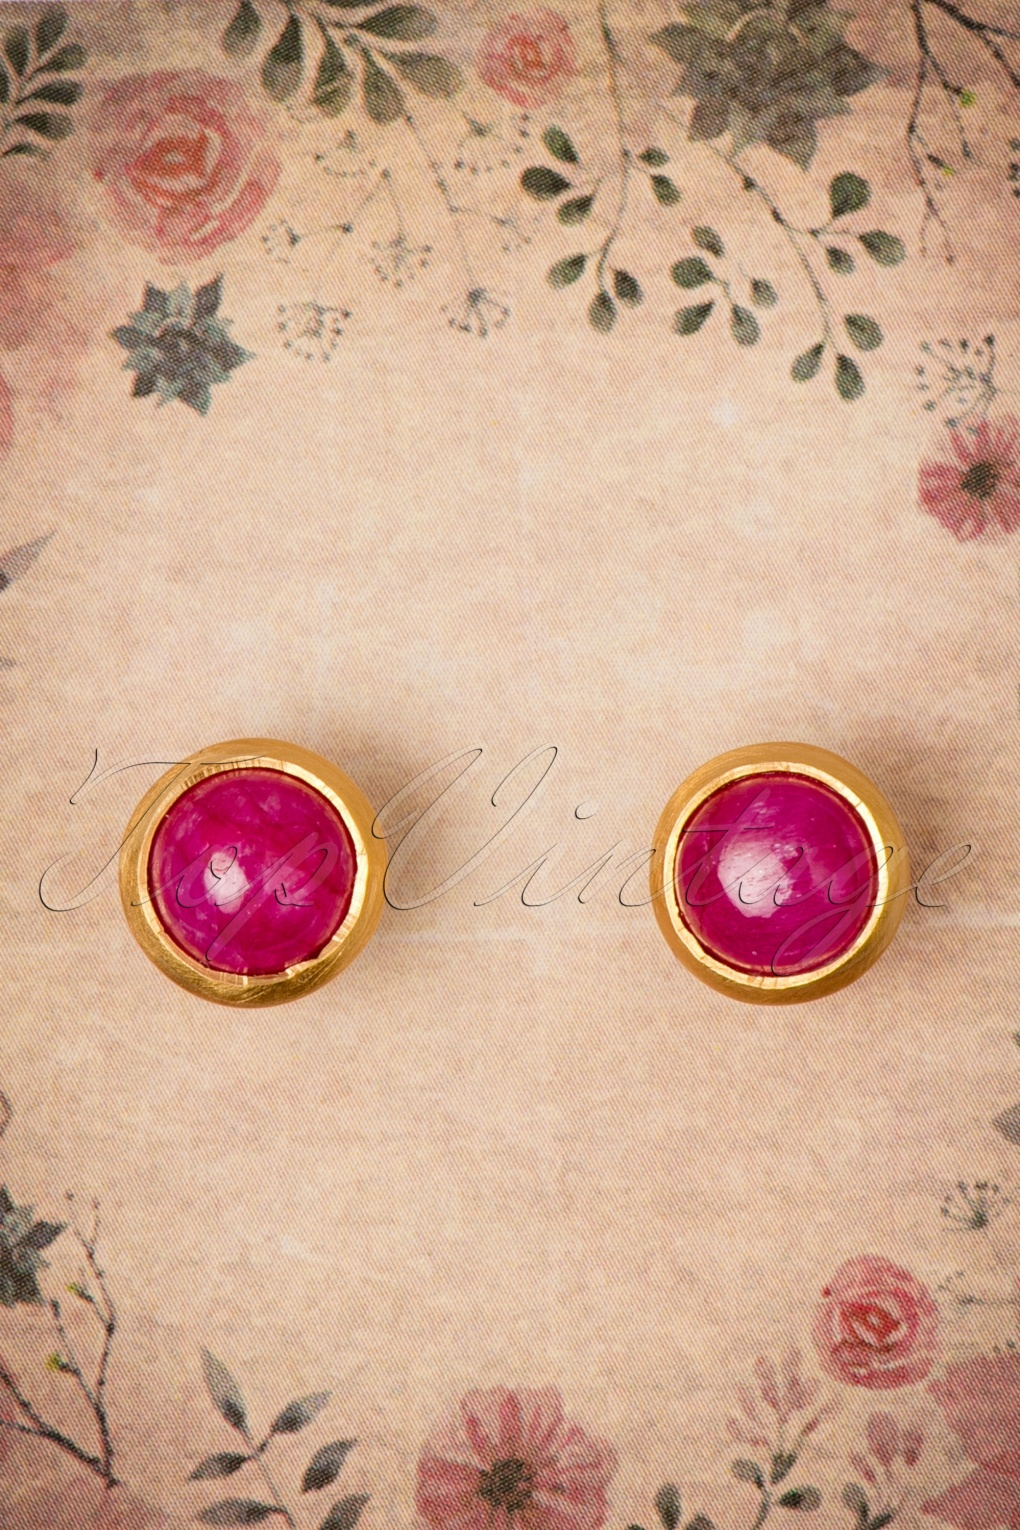 1960s Costume Jewelry – 1960s Style Jewelry 60s Ruby Full Moon Earstuds in Gold £40.41 AT vintagedancer.com